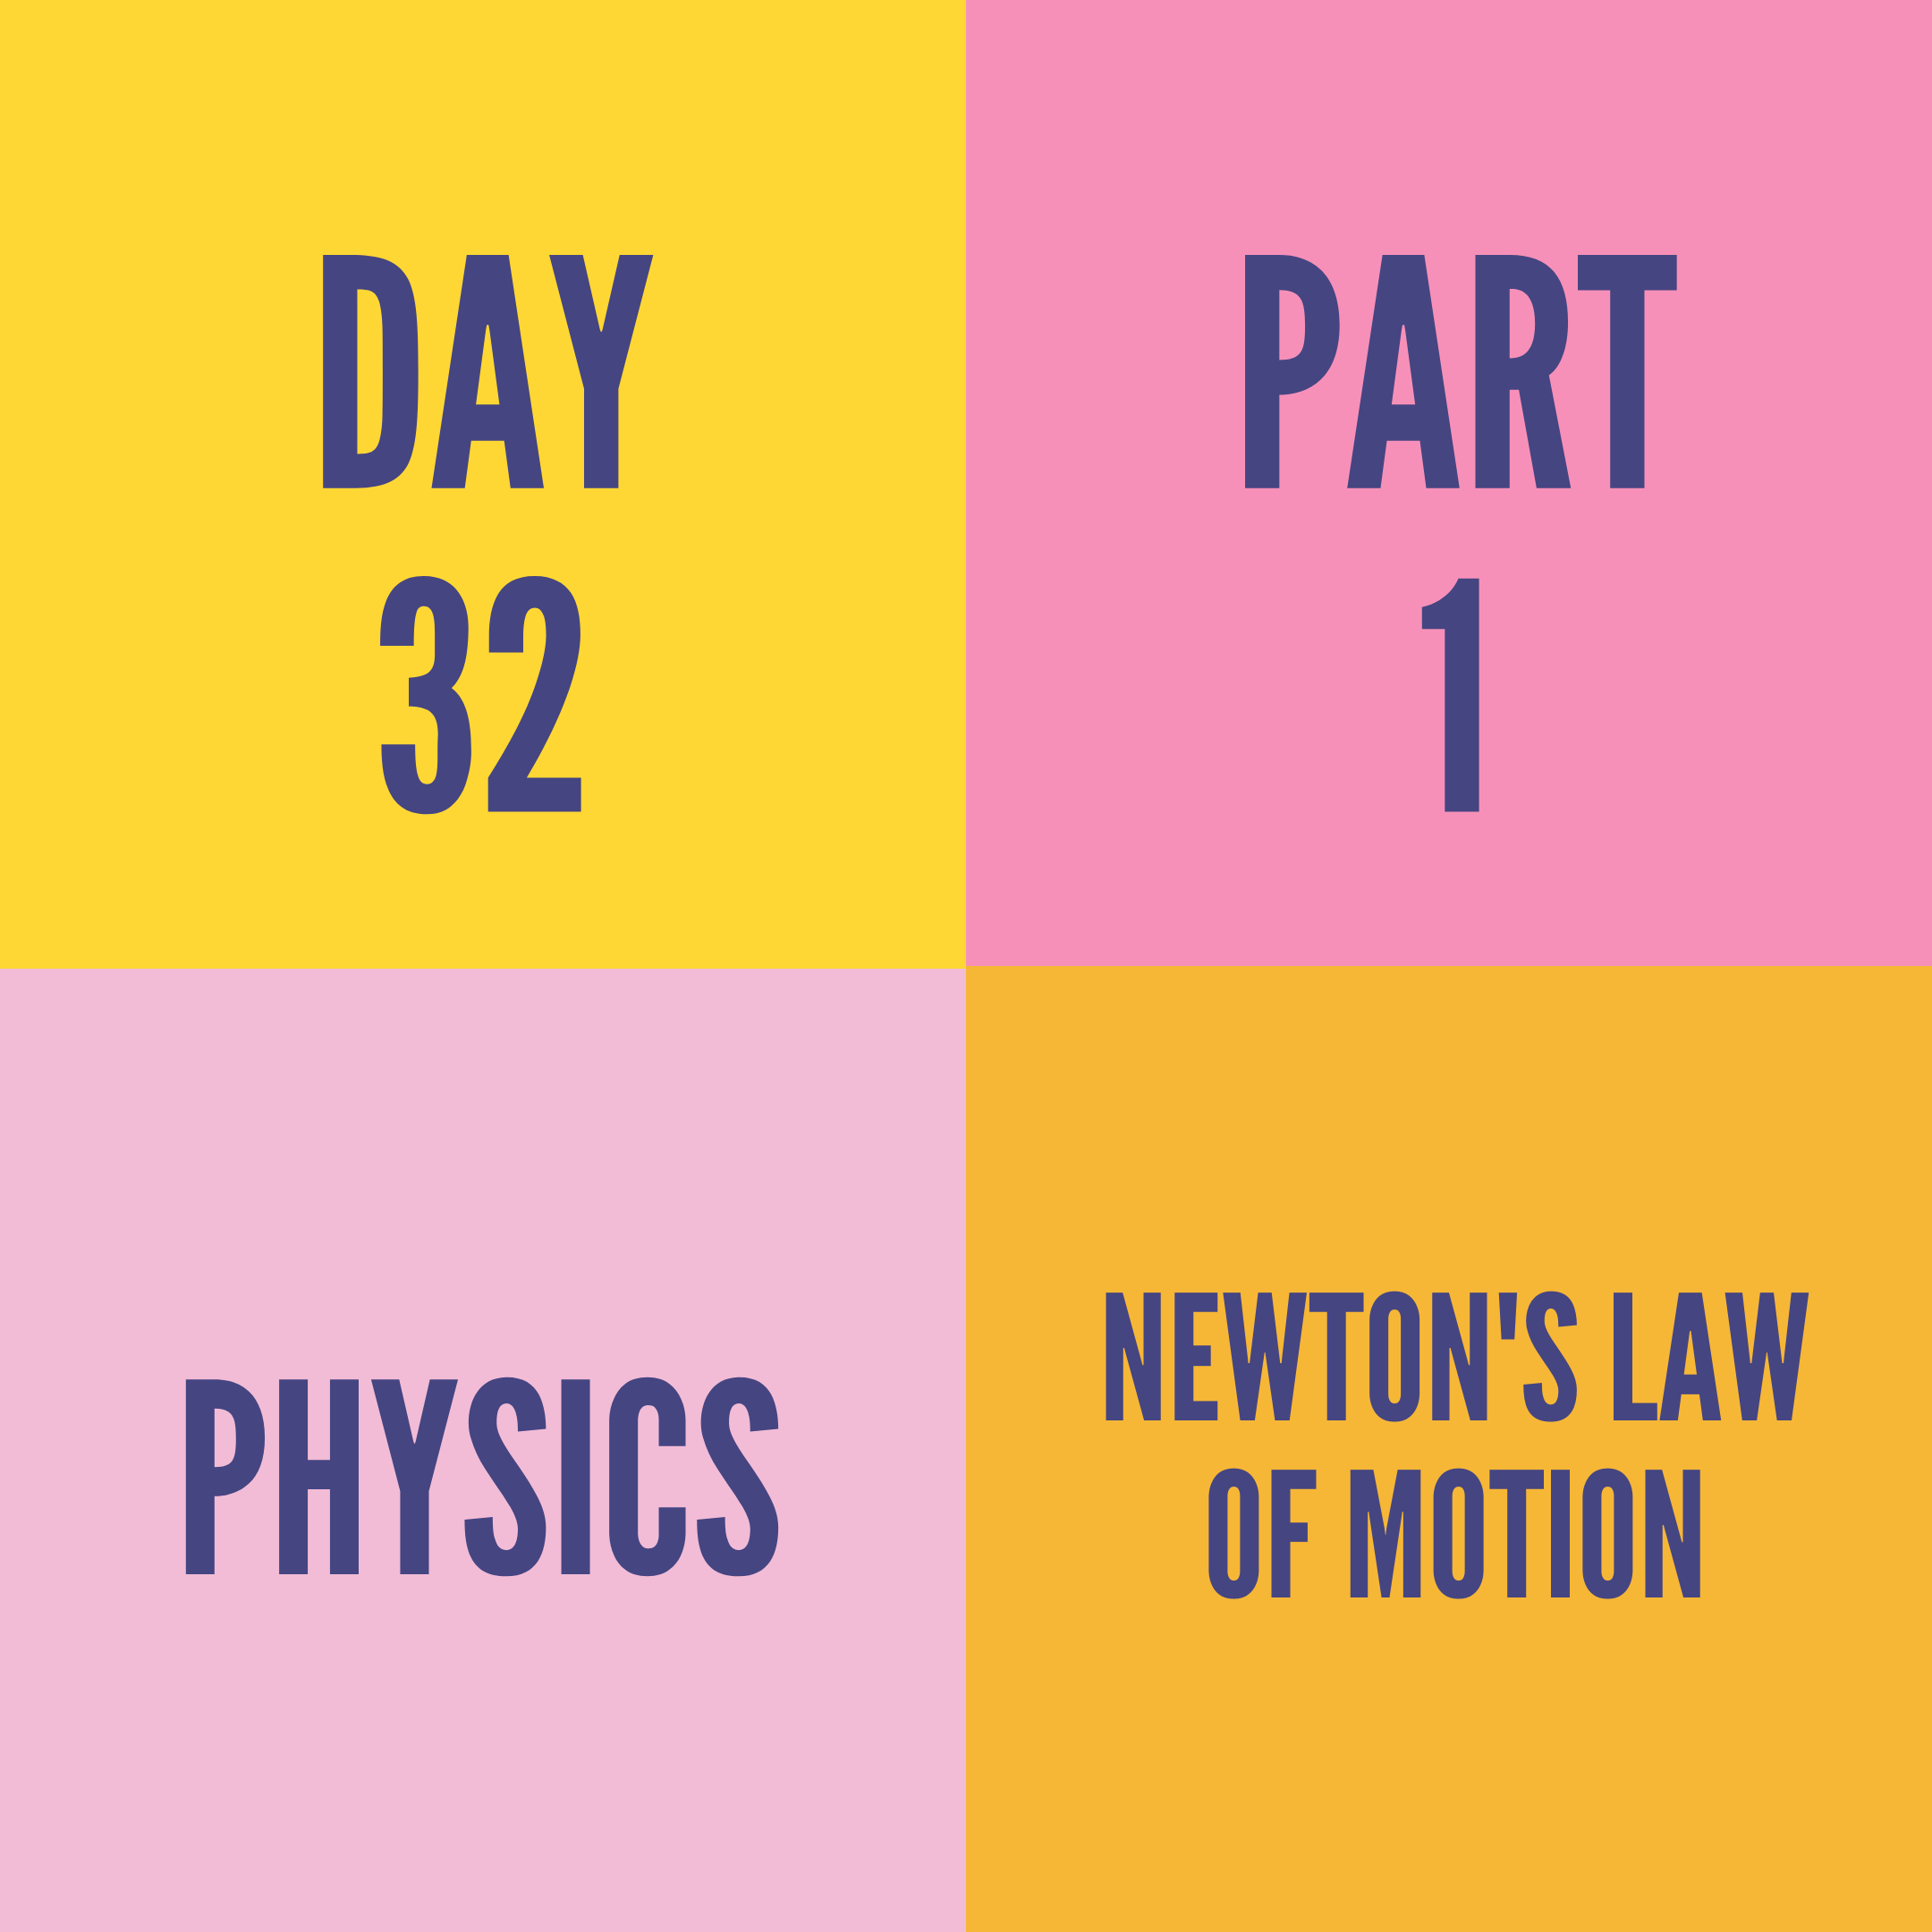 DAY-32 PART-1 NEWTON'S LAW OF MOTION